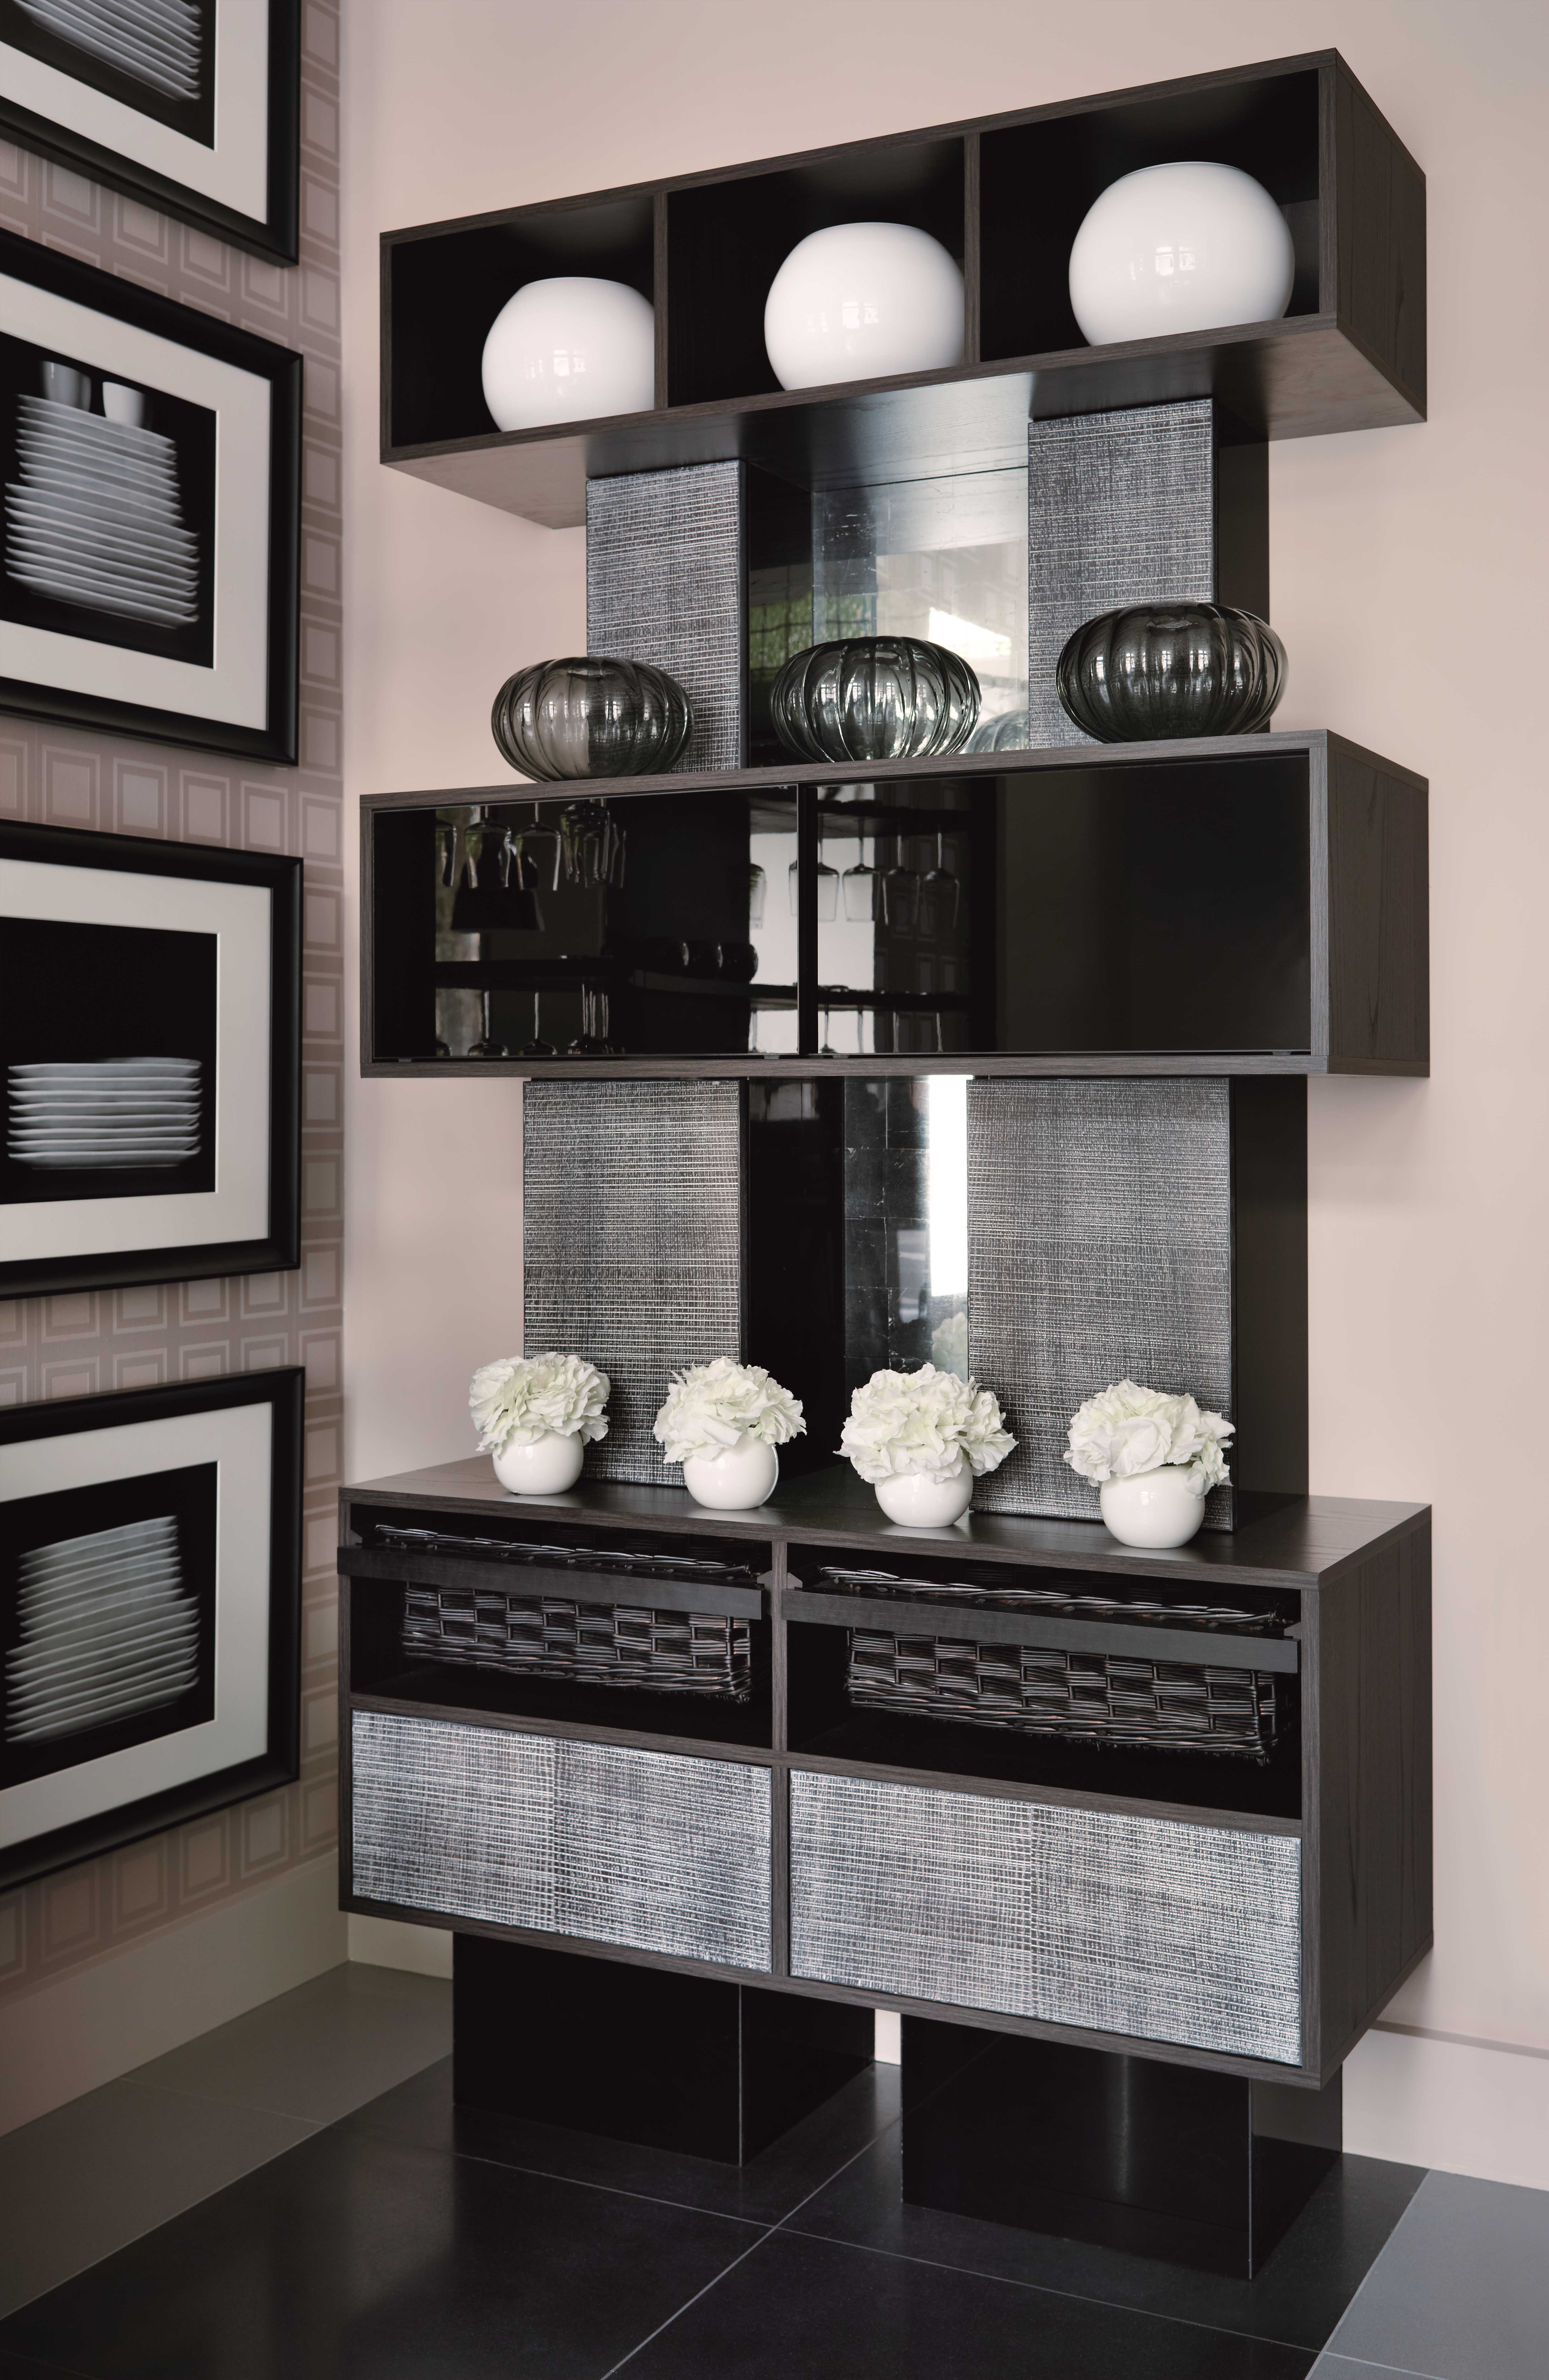 Kelly Hoppen, The Britainu0027s First Lady Of Interior Design, Is A  World Renowned Designer Who Has Pioneered A Simple Yet Opulent Style That  Has Permeated ... Part 63